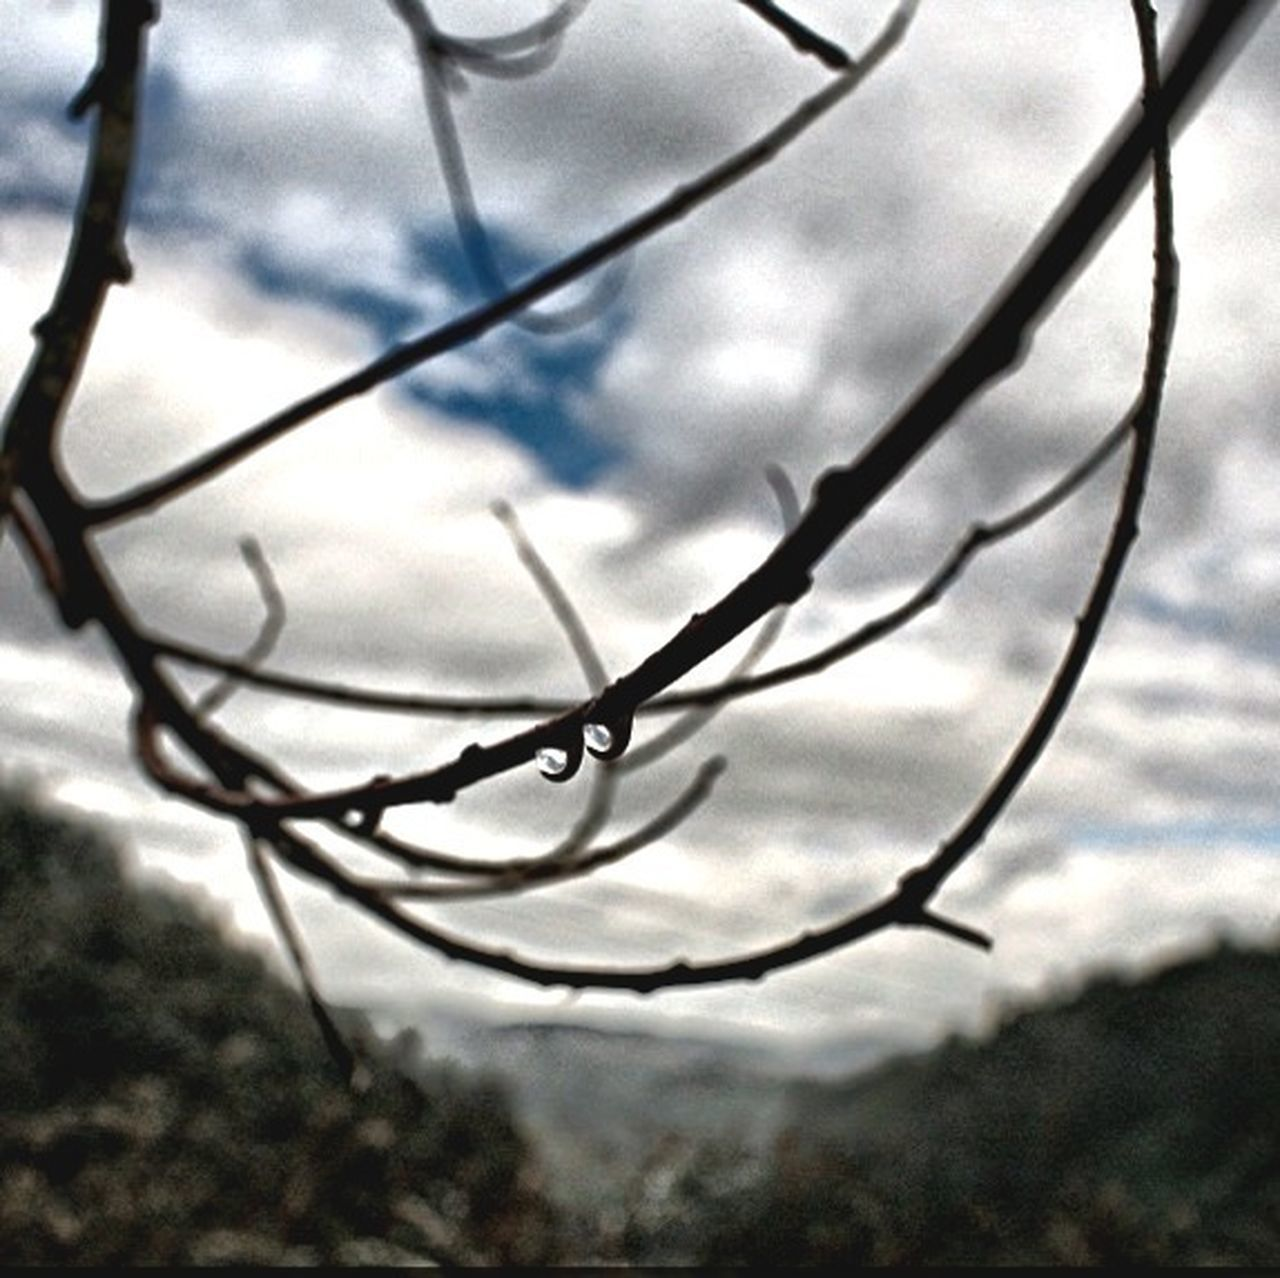 close-up, no people, day, focus on foreground, nature, outdoors, sky, tree